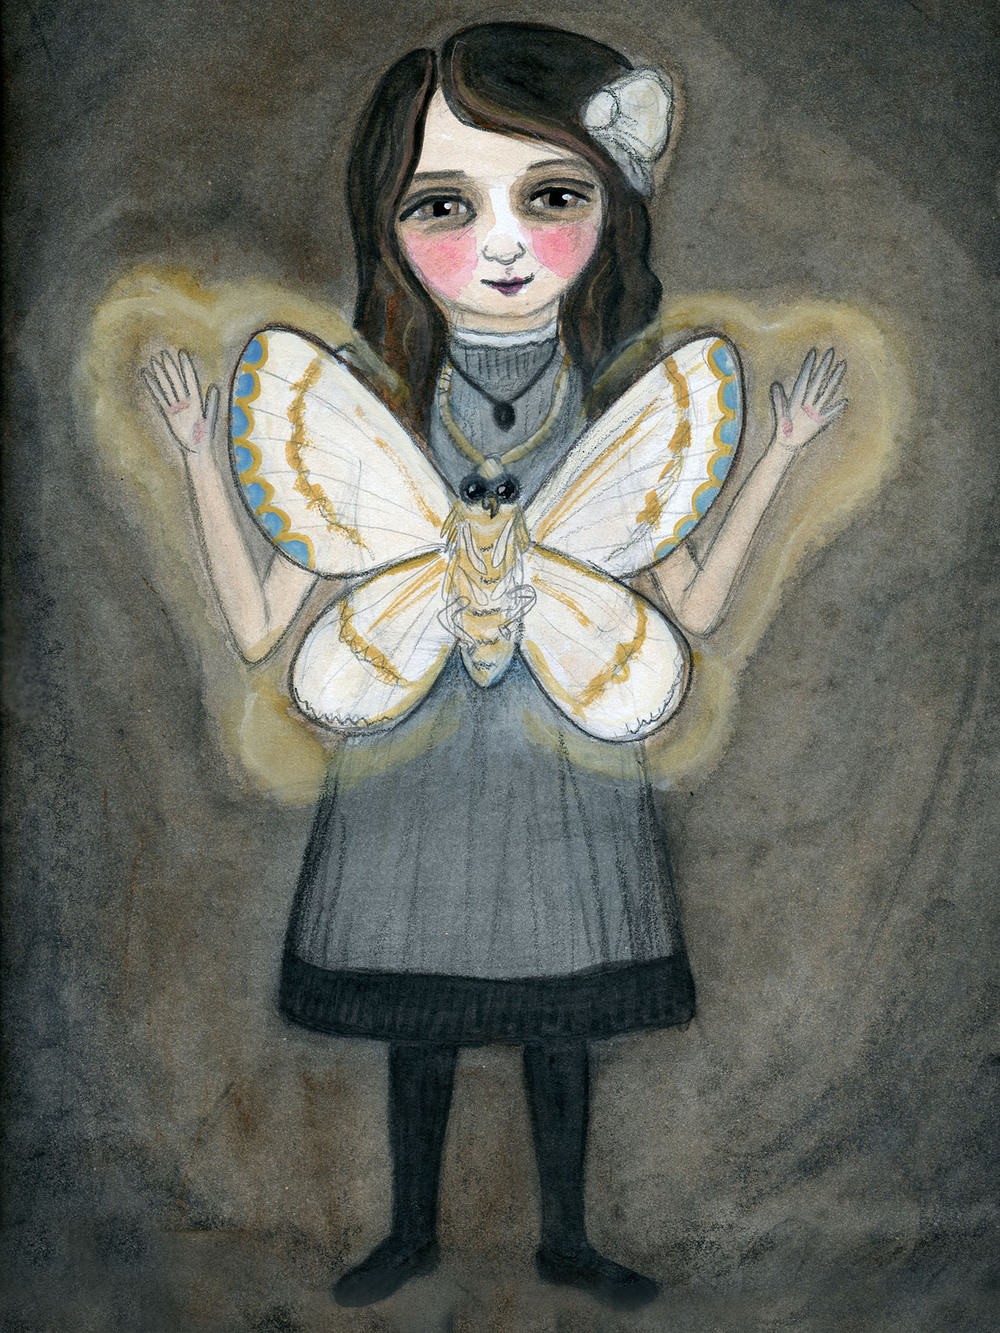 The Moth Girl